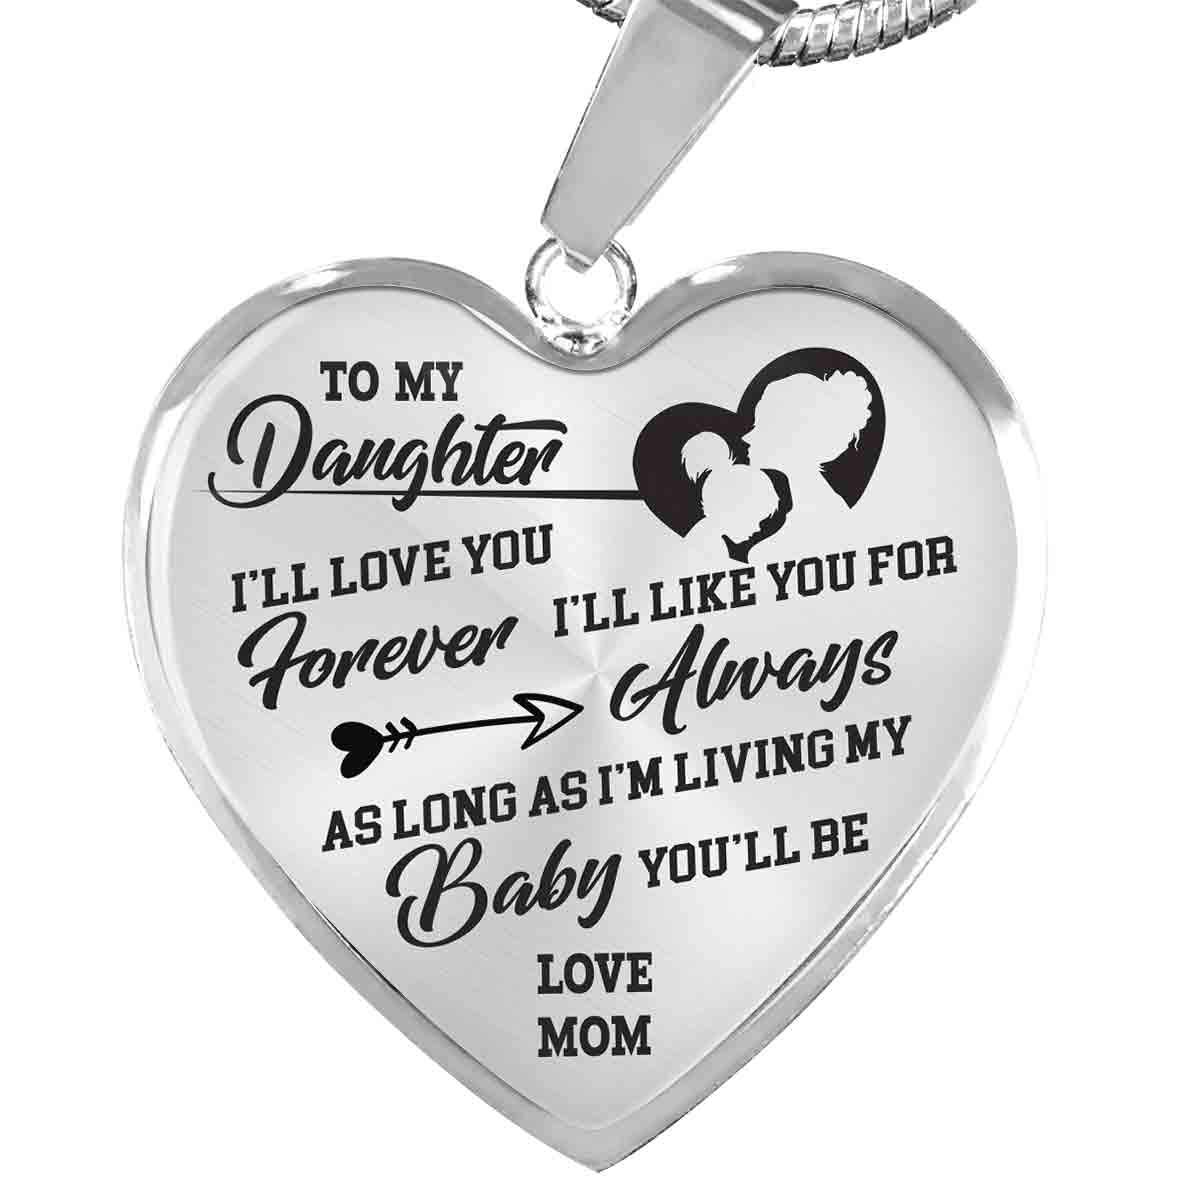 To My Daughter - Love Mom - Luxury Heart Necklace